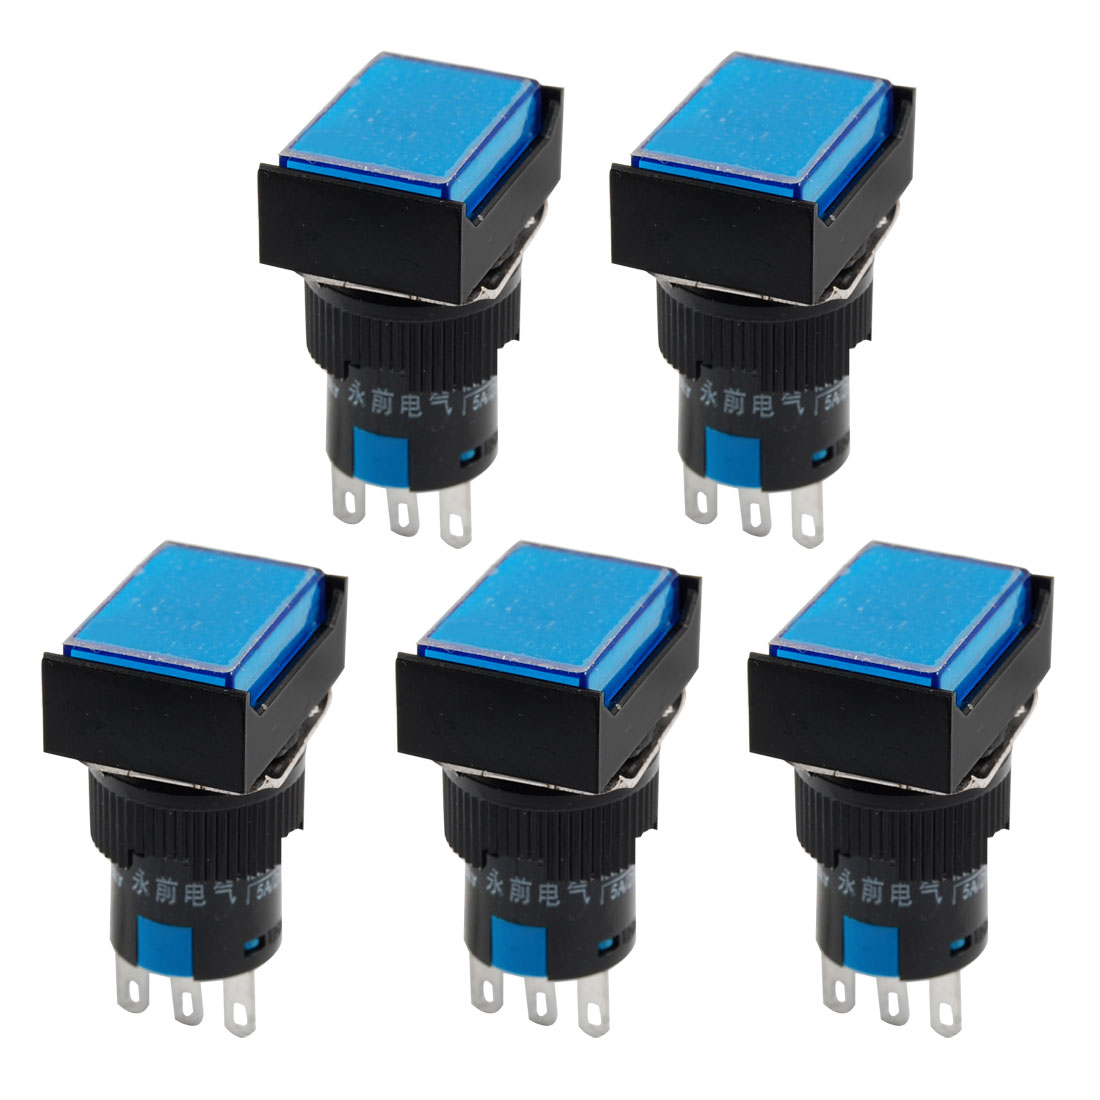 5 x Blue Rectangular Cap Momentary Panel Push Button Switch AC 250V 5A